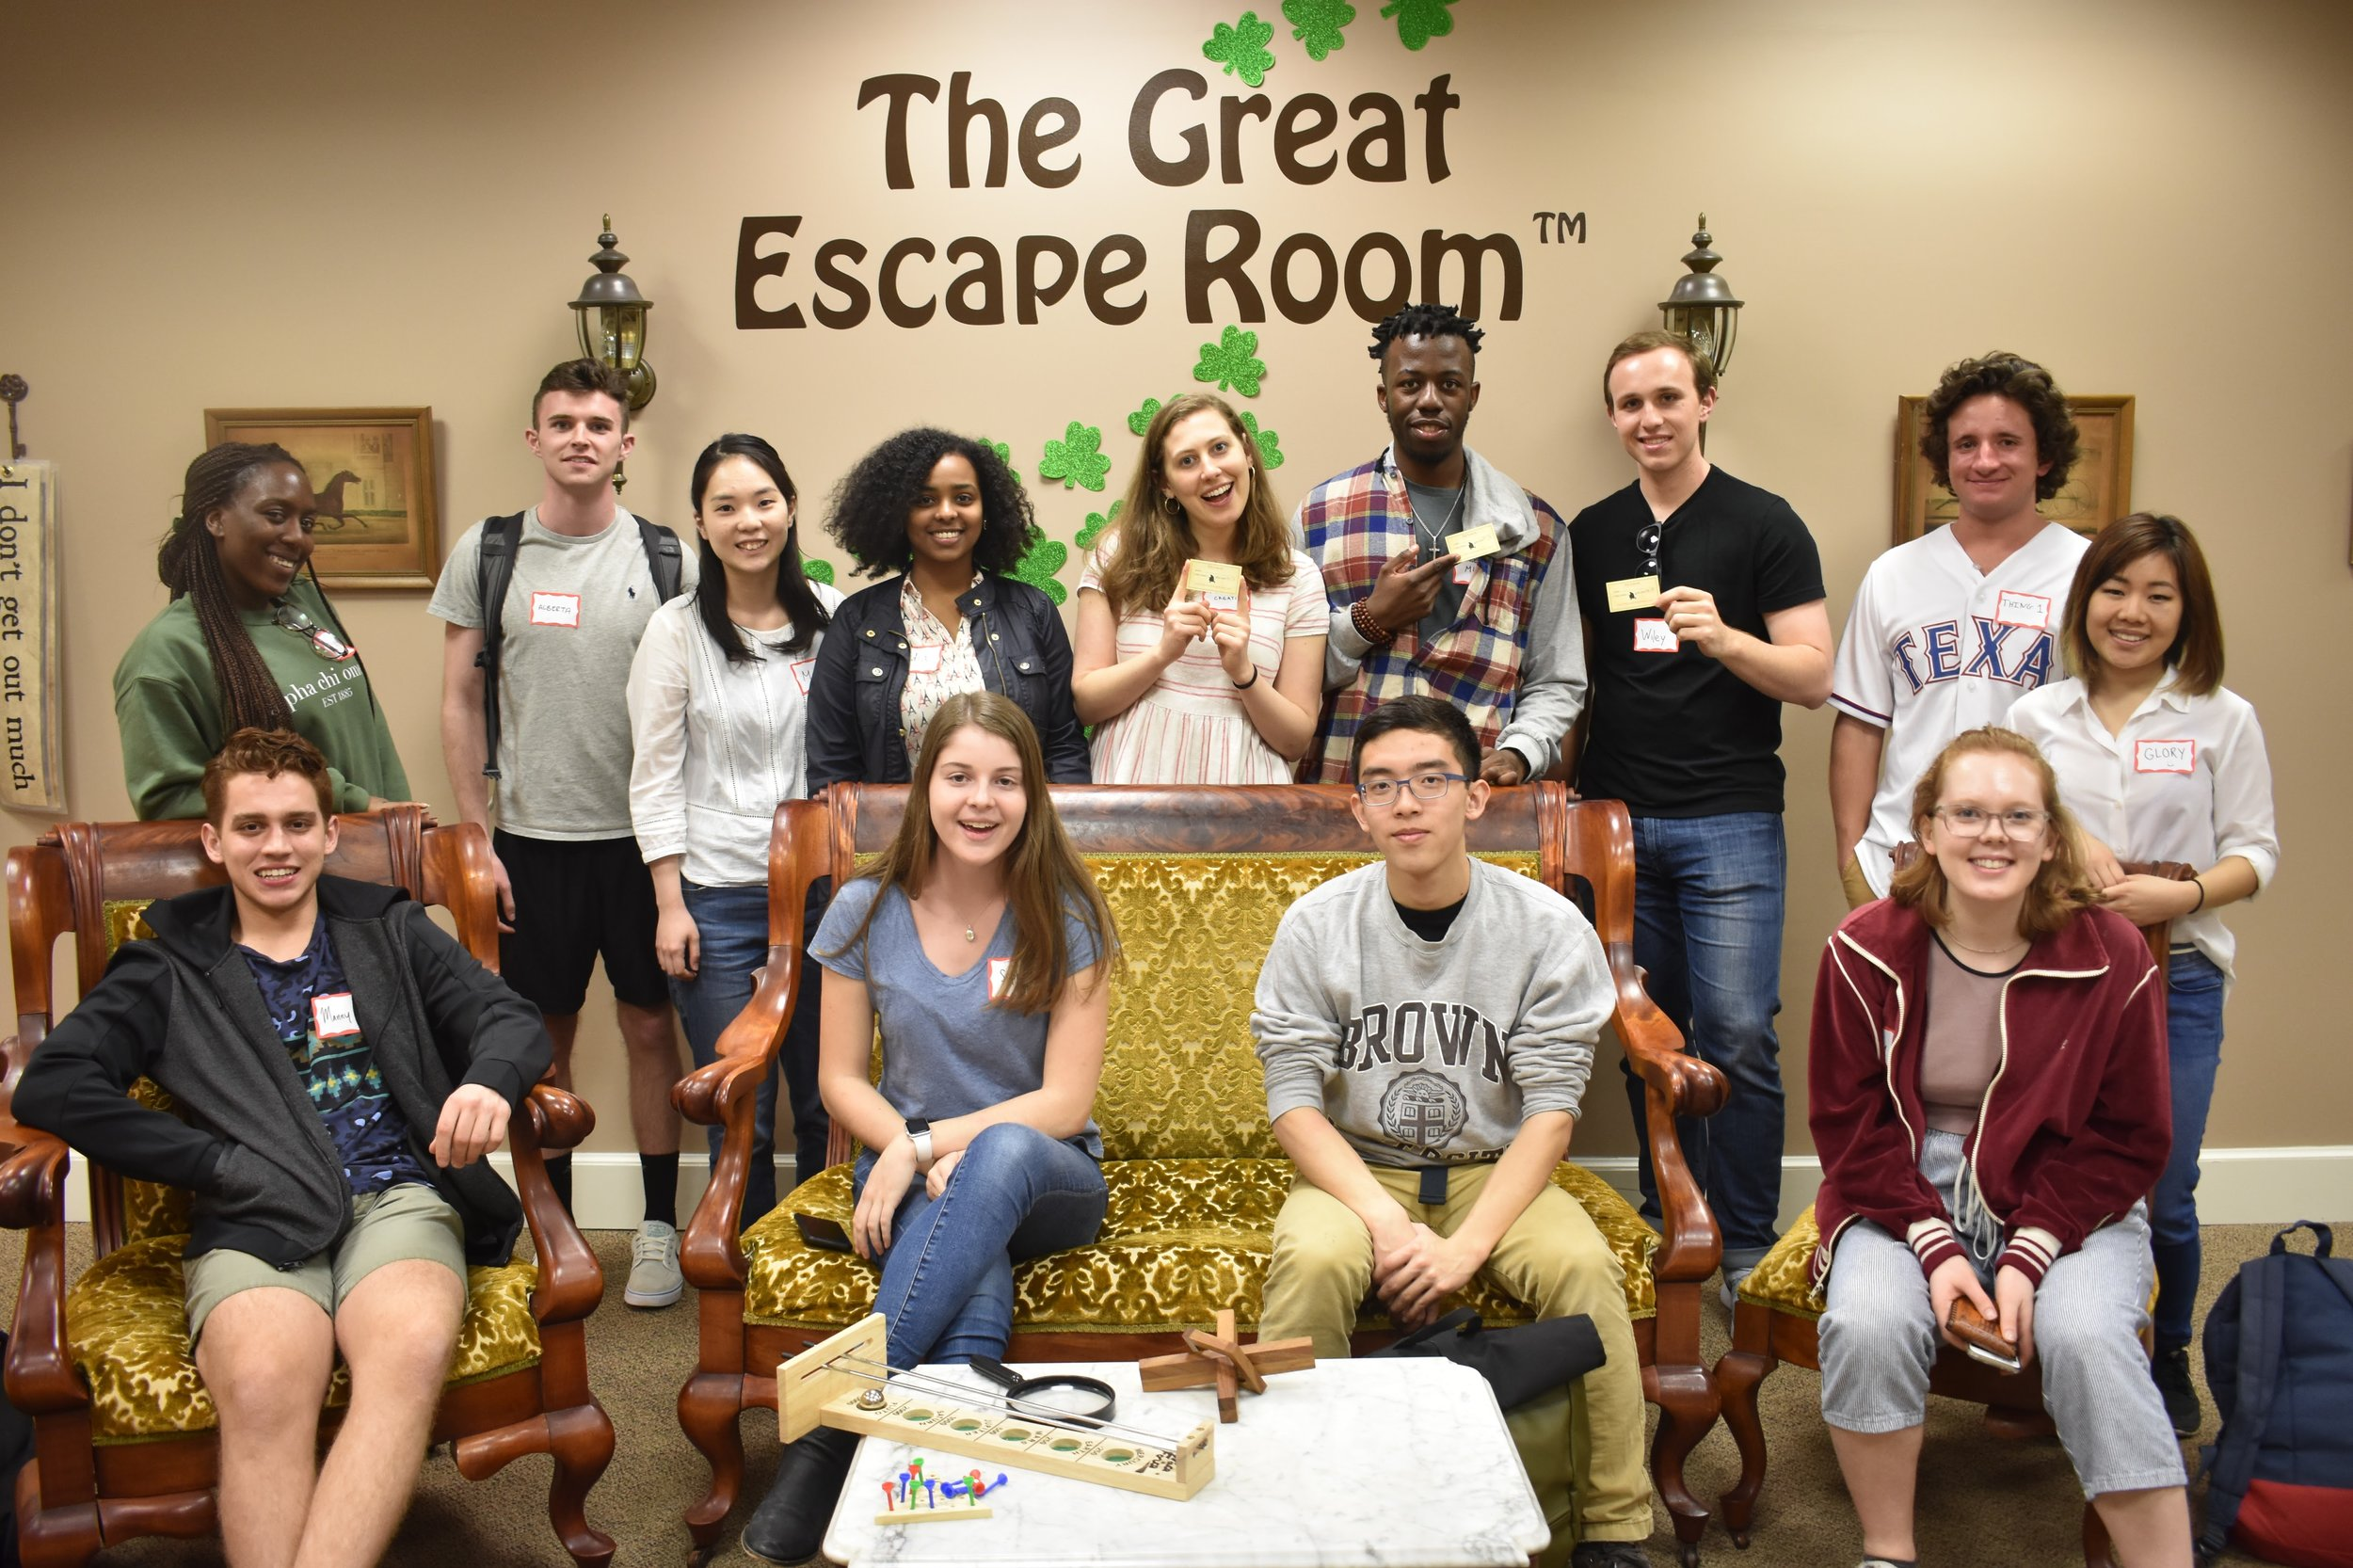 Squad photo with some of the Team 'Condensed Milk' Escape the Room Spring '17 Champions